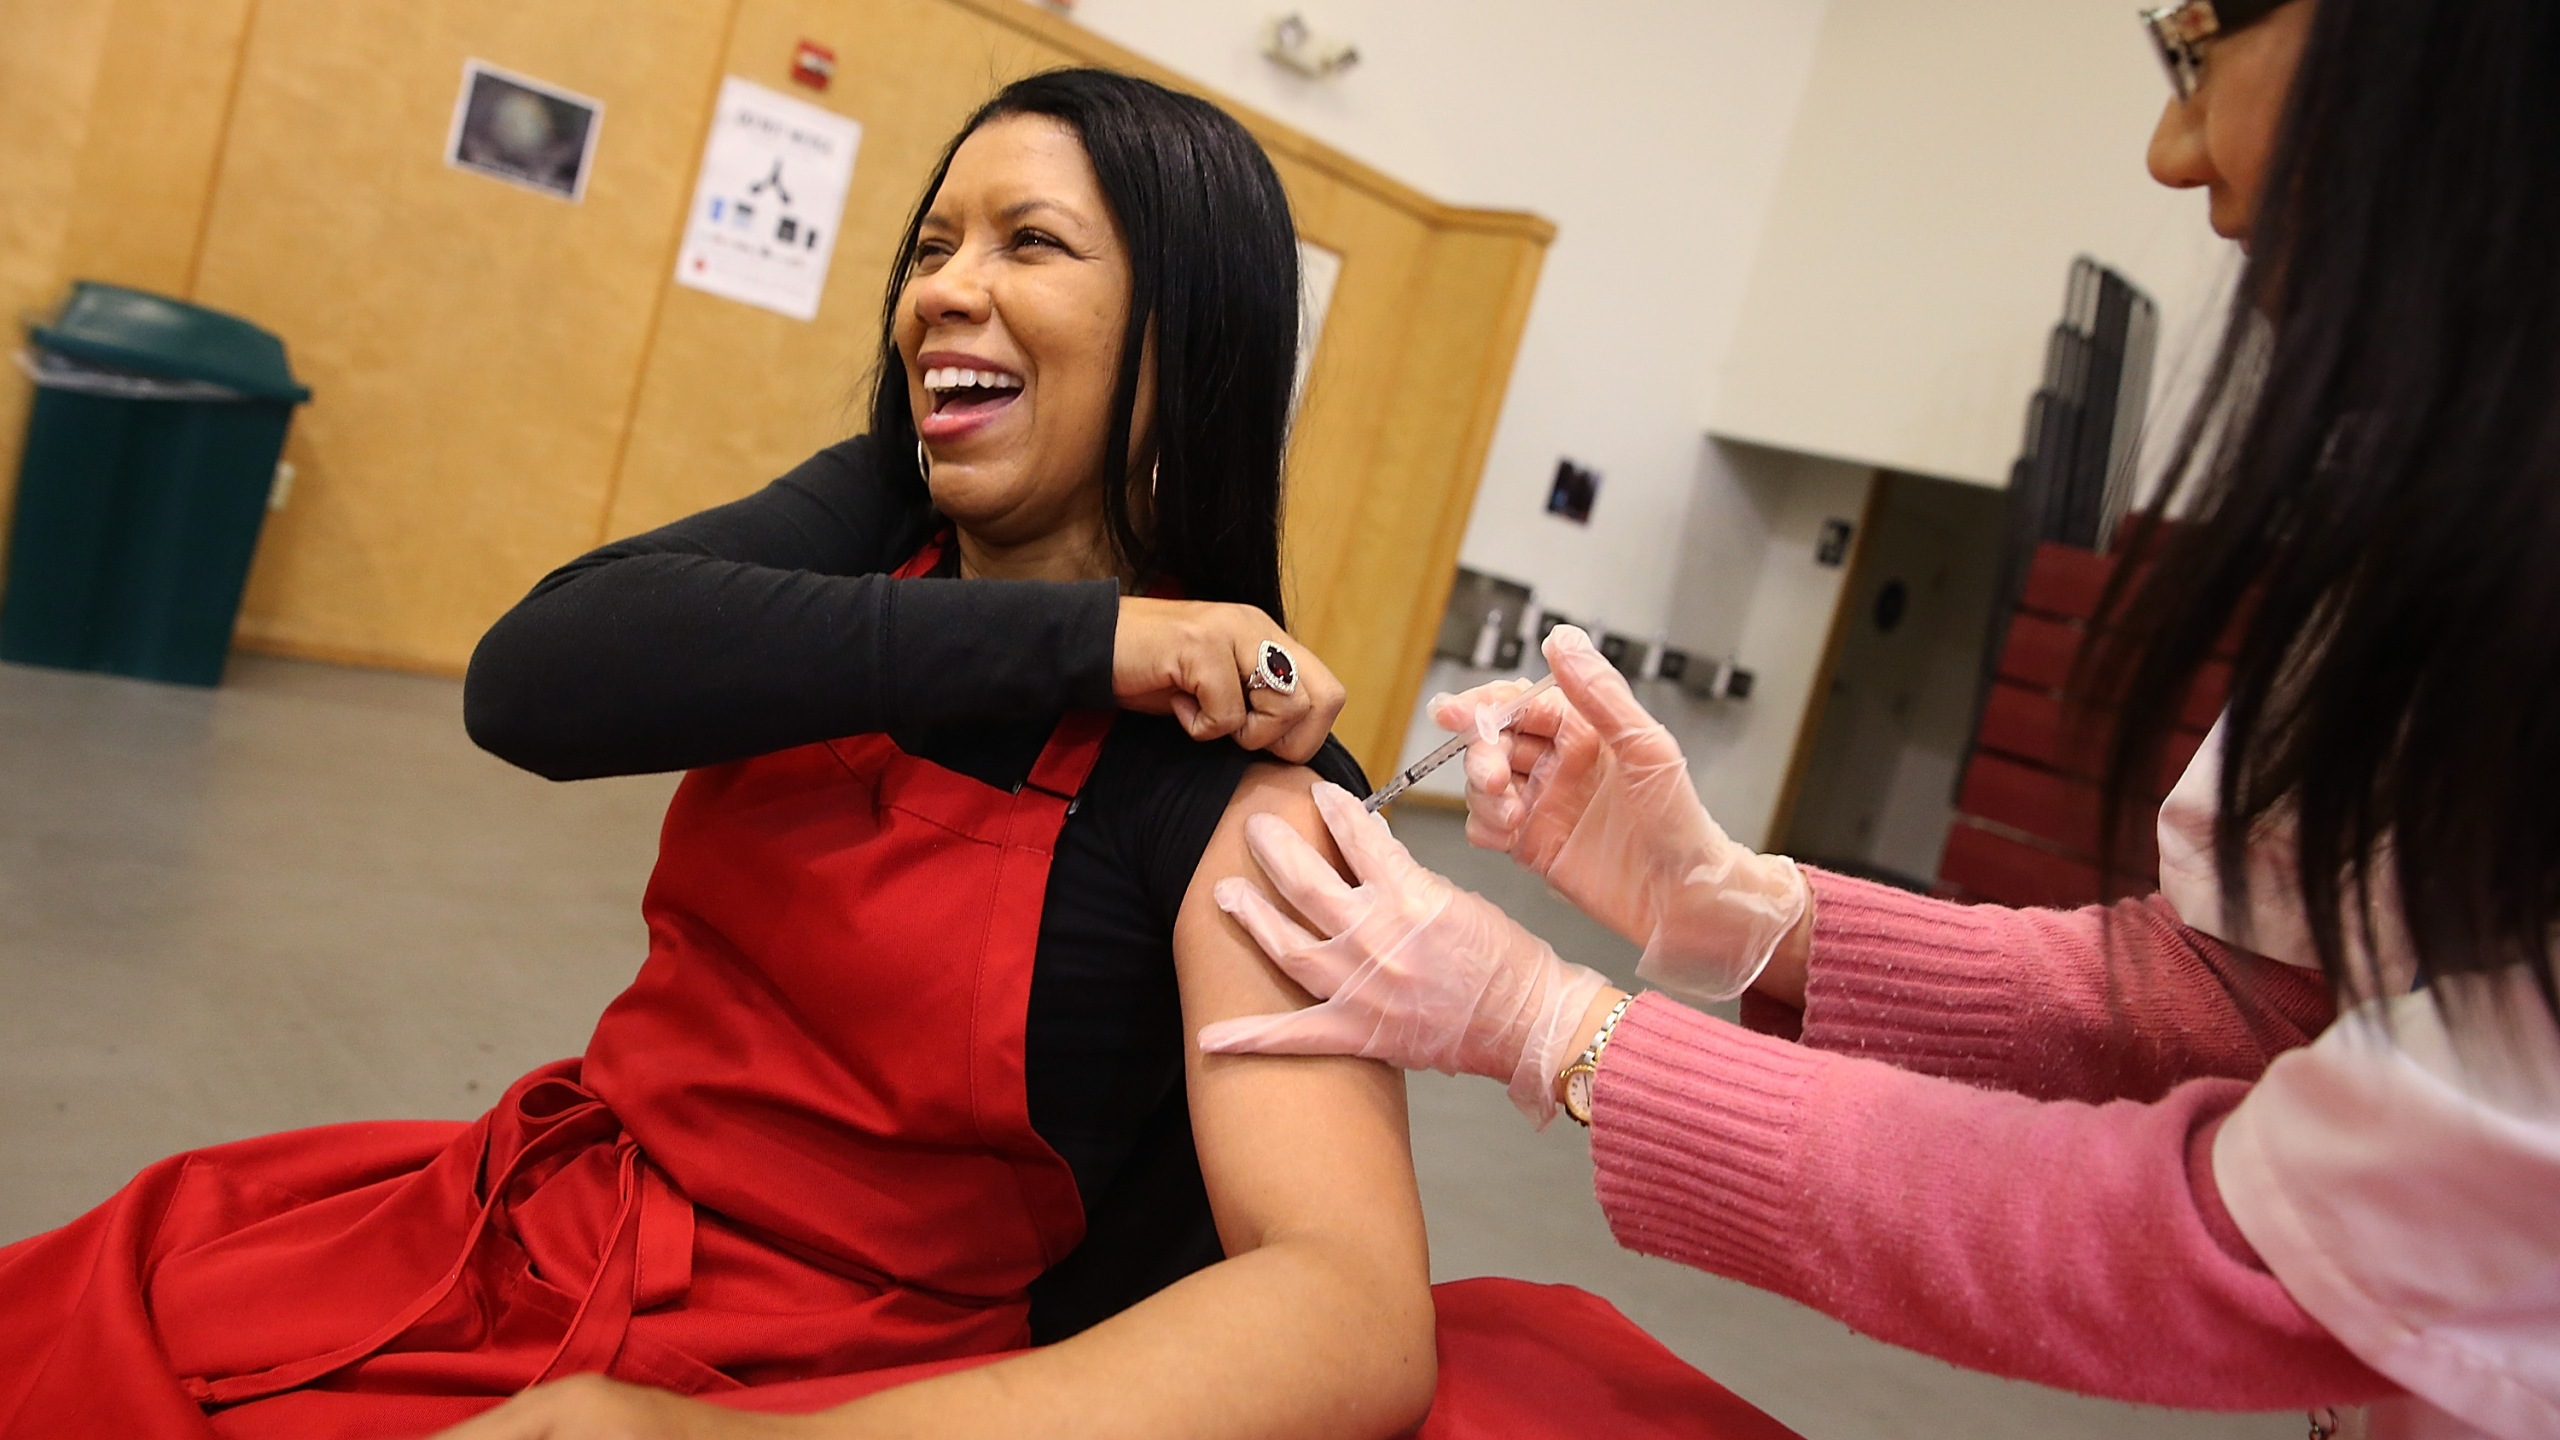 Cynthia Foreman receives a free flu shot from a Walgreens employee during a free flu shot clinic at Allen Temple Baptist Church on Dec. 19, 2014, in Oakland. (Credit: Justin Sullivan/Getty Images)